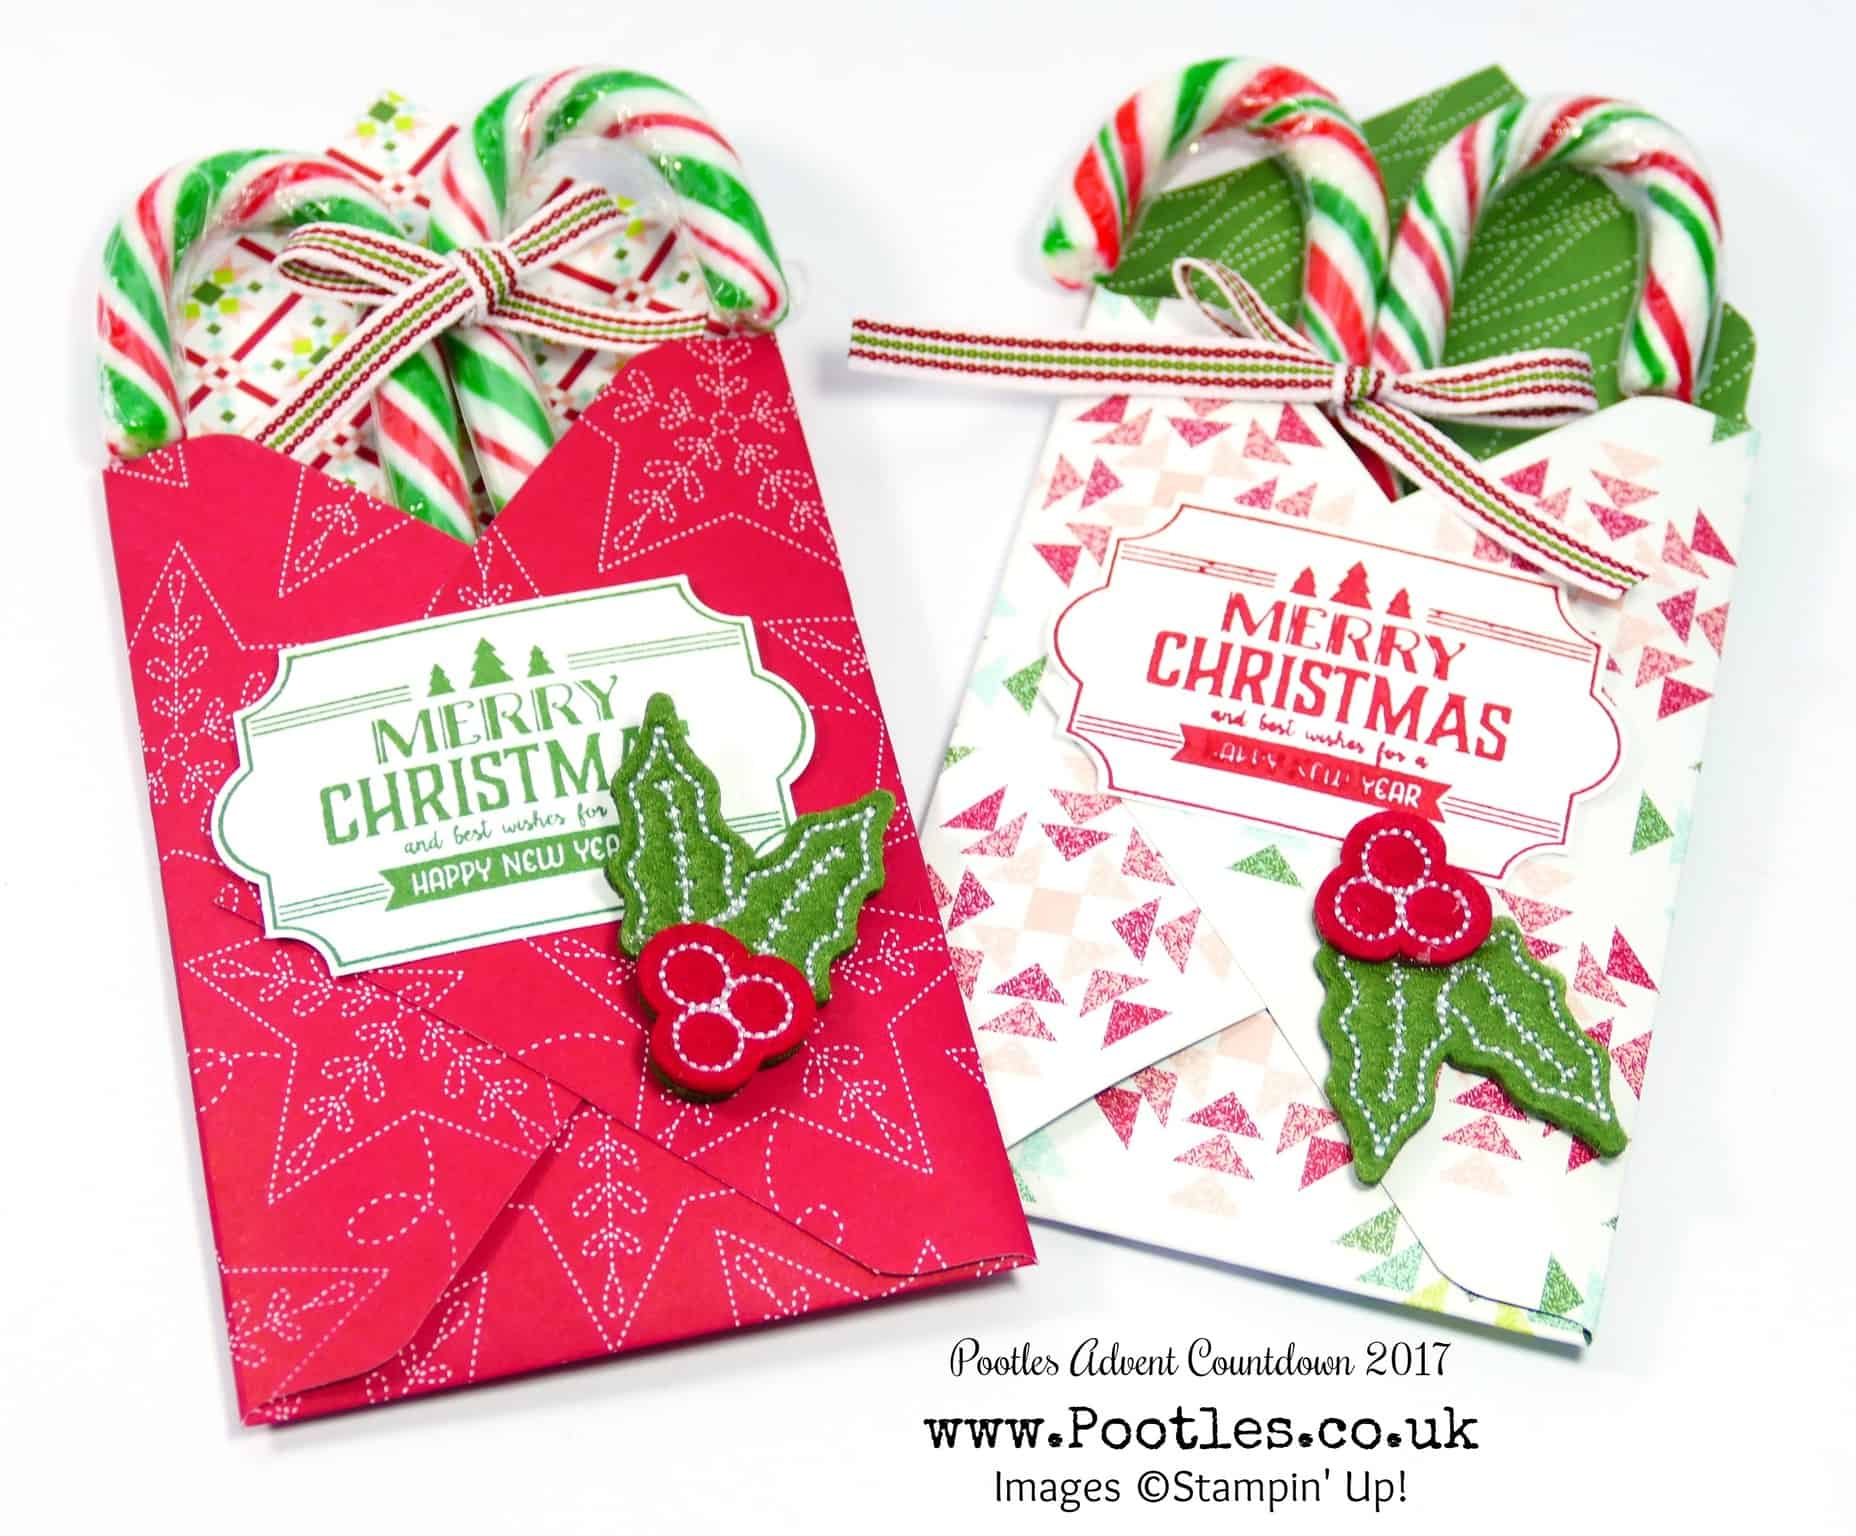 Pootles Advent Countdown 2017 #13 Candy Cane Customer Gift Treats